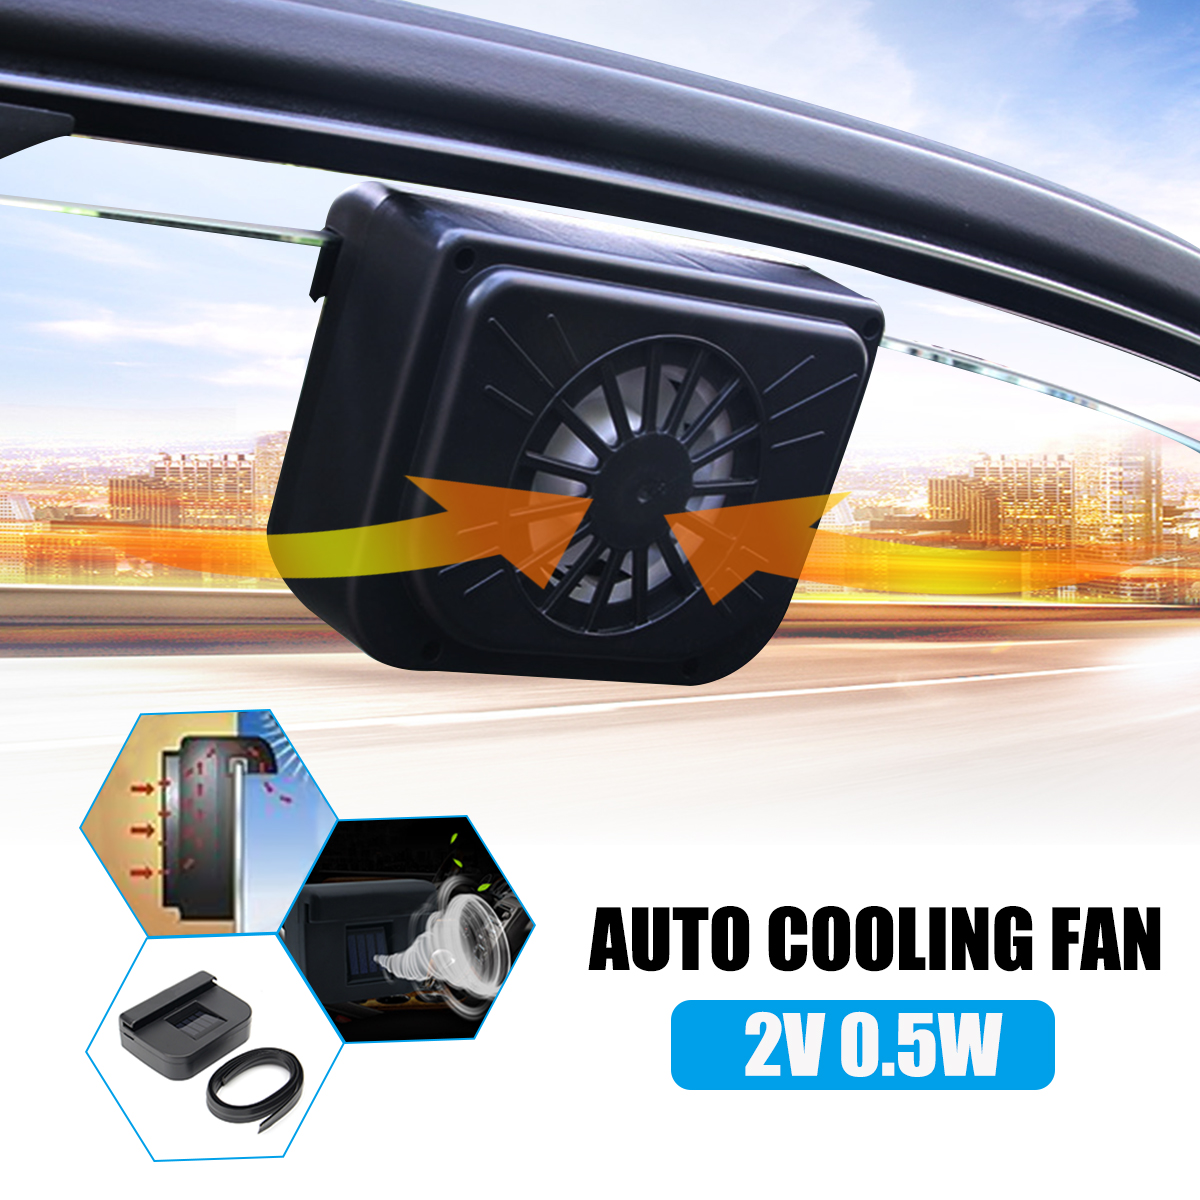 20v 05a Car Solar Exhaust Fan Auto Air Cooling With Rubber Cool Stripping Energy Saving Ventilation System In Heating Fans From Automobiles Motorcycles